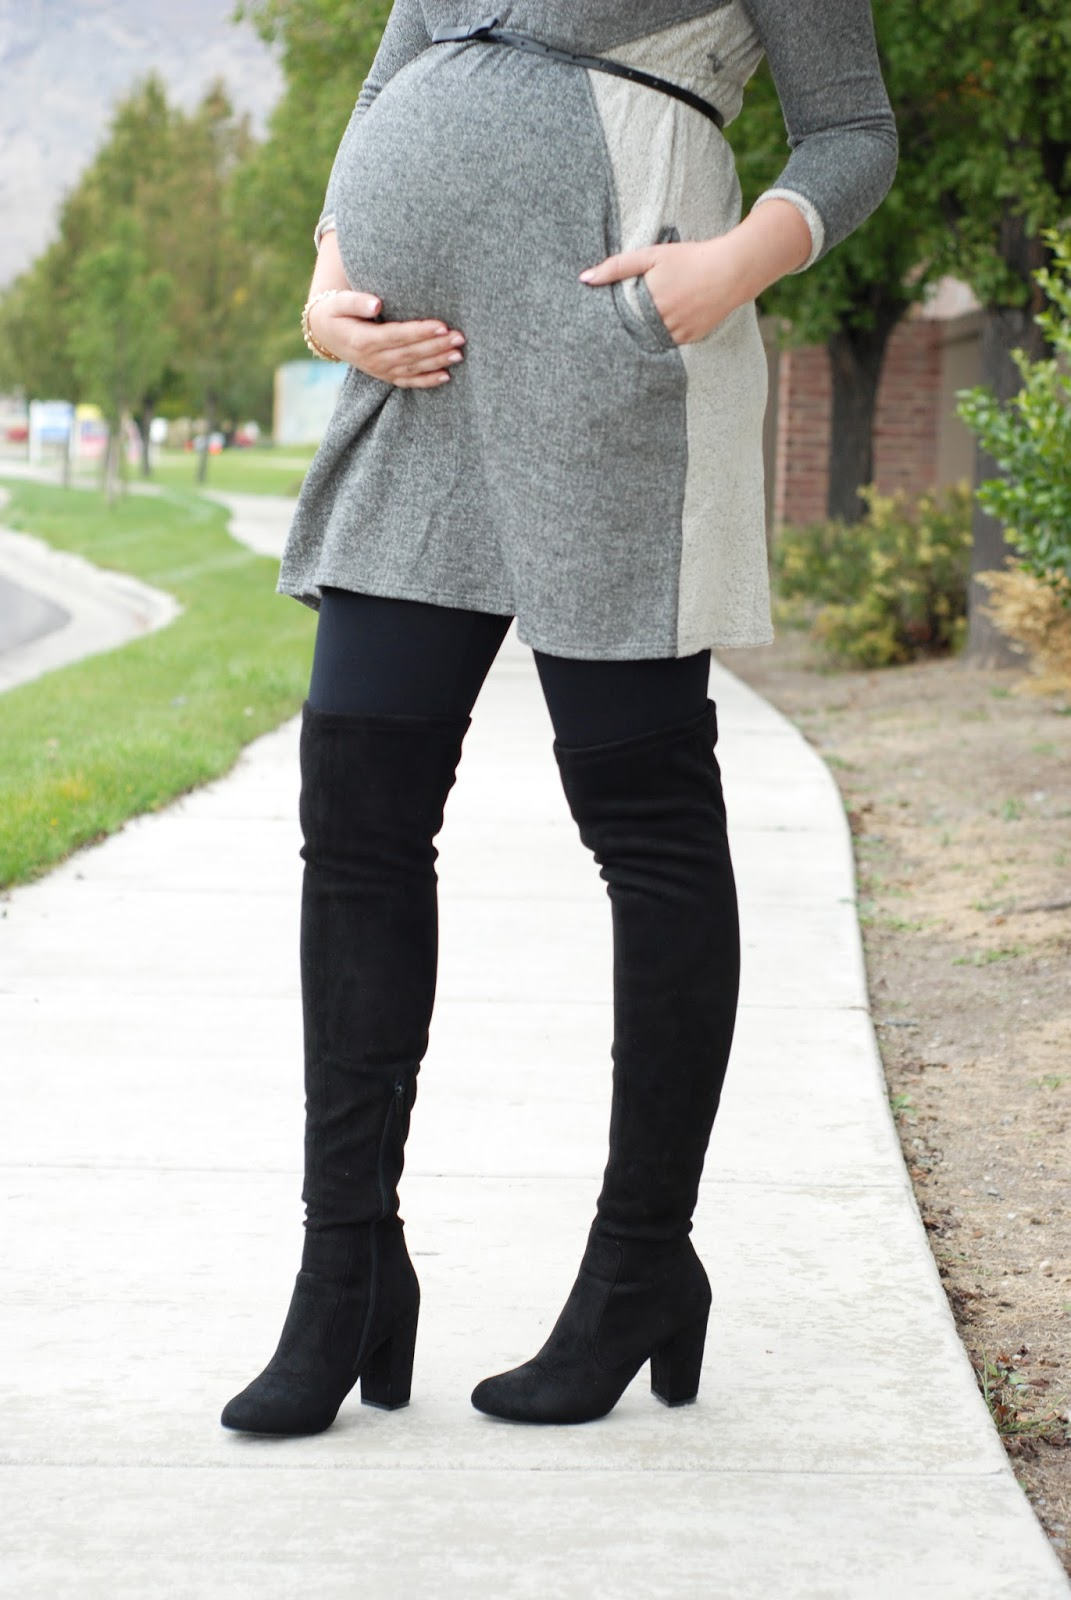 Black Knee High Boots, Boots, Fall Outfit